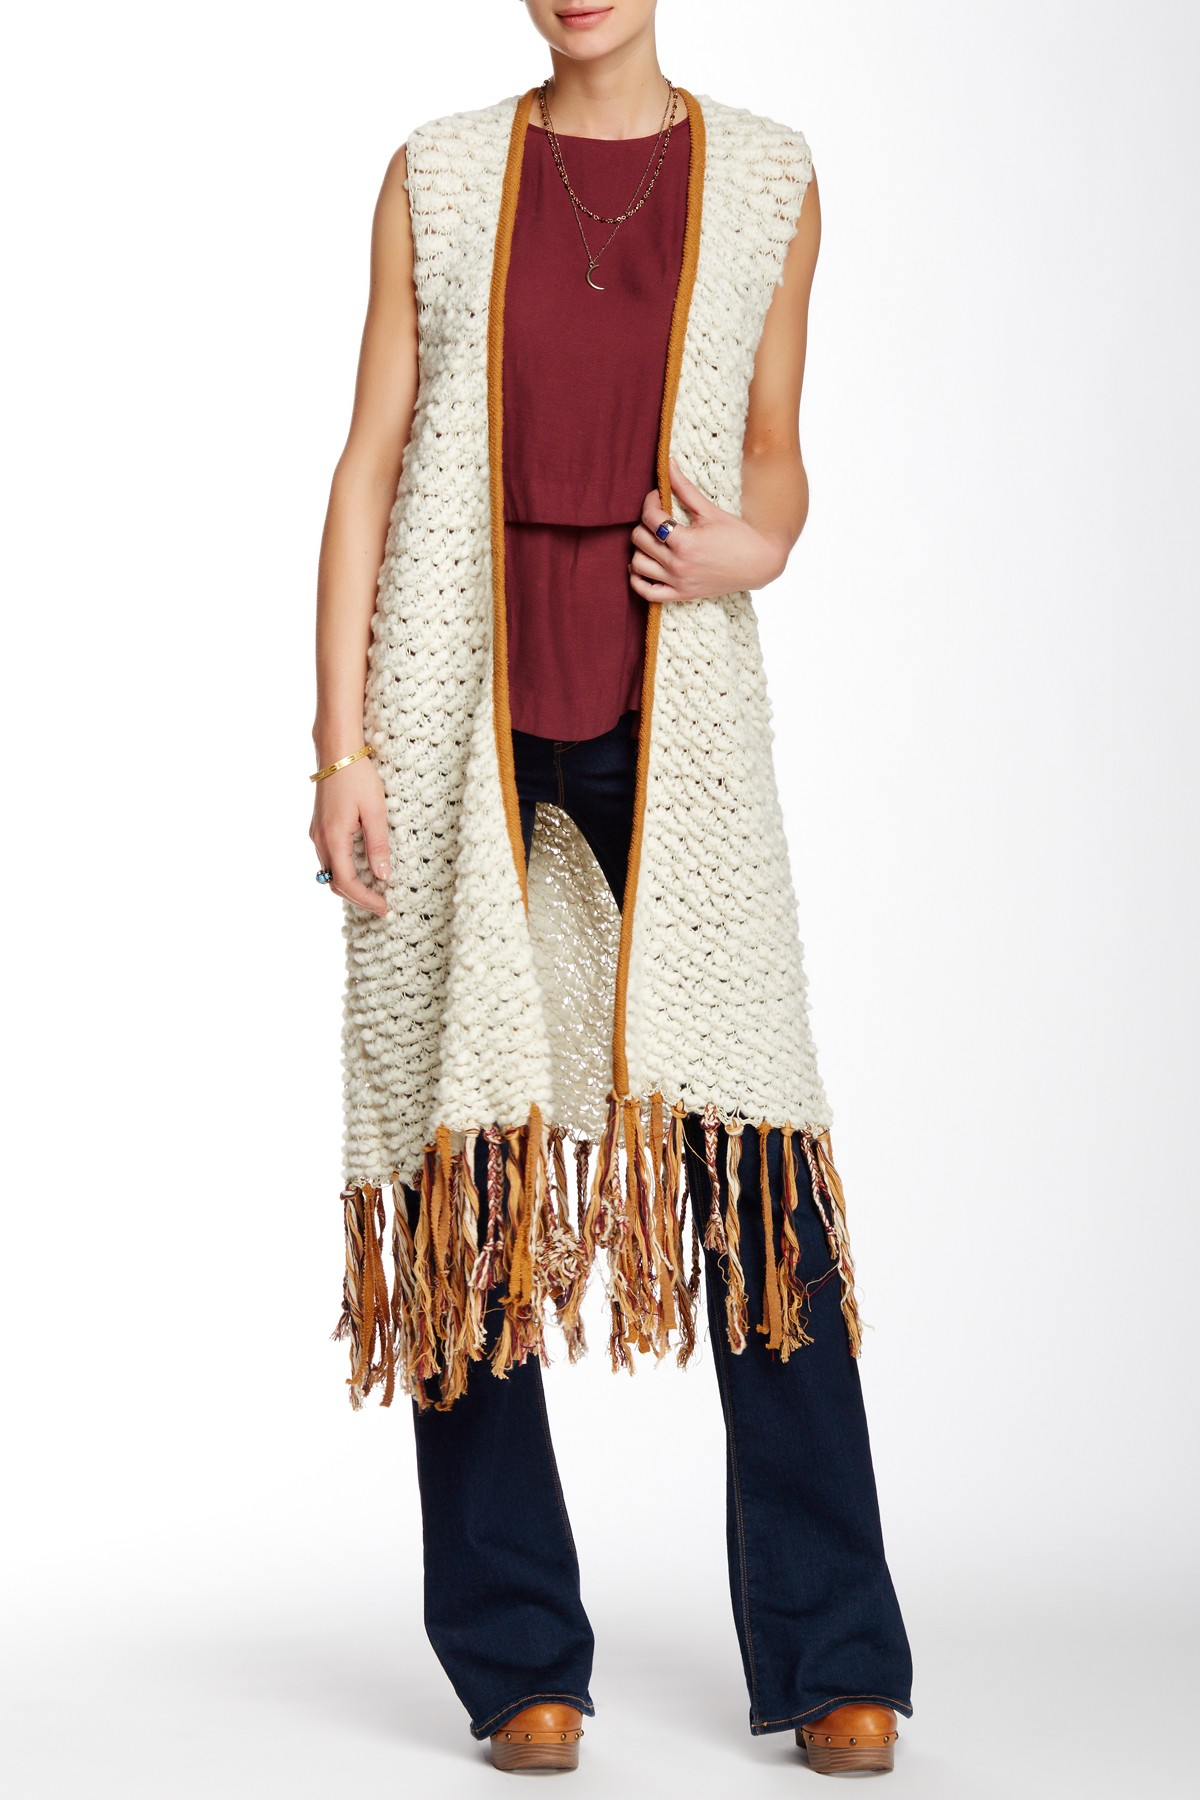 blue-navy-flare-jeans-burgundy-top-white-vest-knit-cognac-shoe-booties-fringe-fall-winter-lunch.jpg